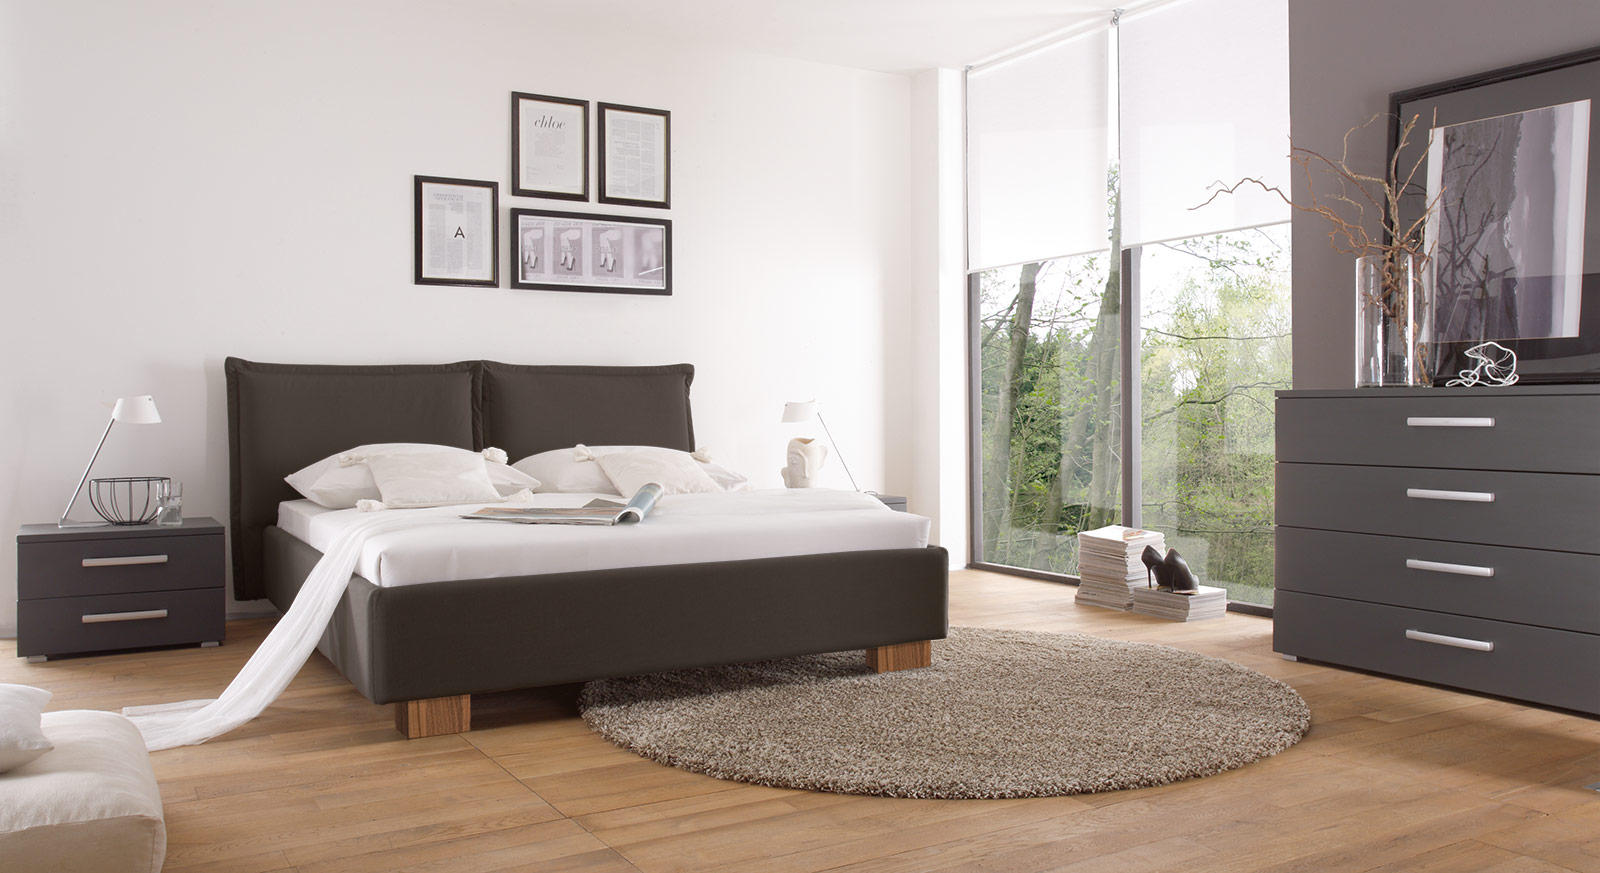 landhaus betten die neueste innovation der innenarchitektur und m bel. Black Bedroom Furniture Sets. Home Design Ideas